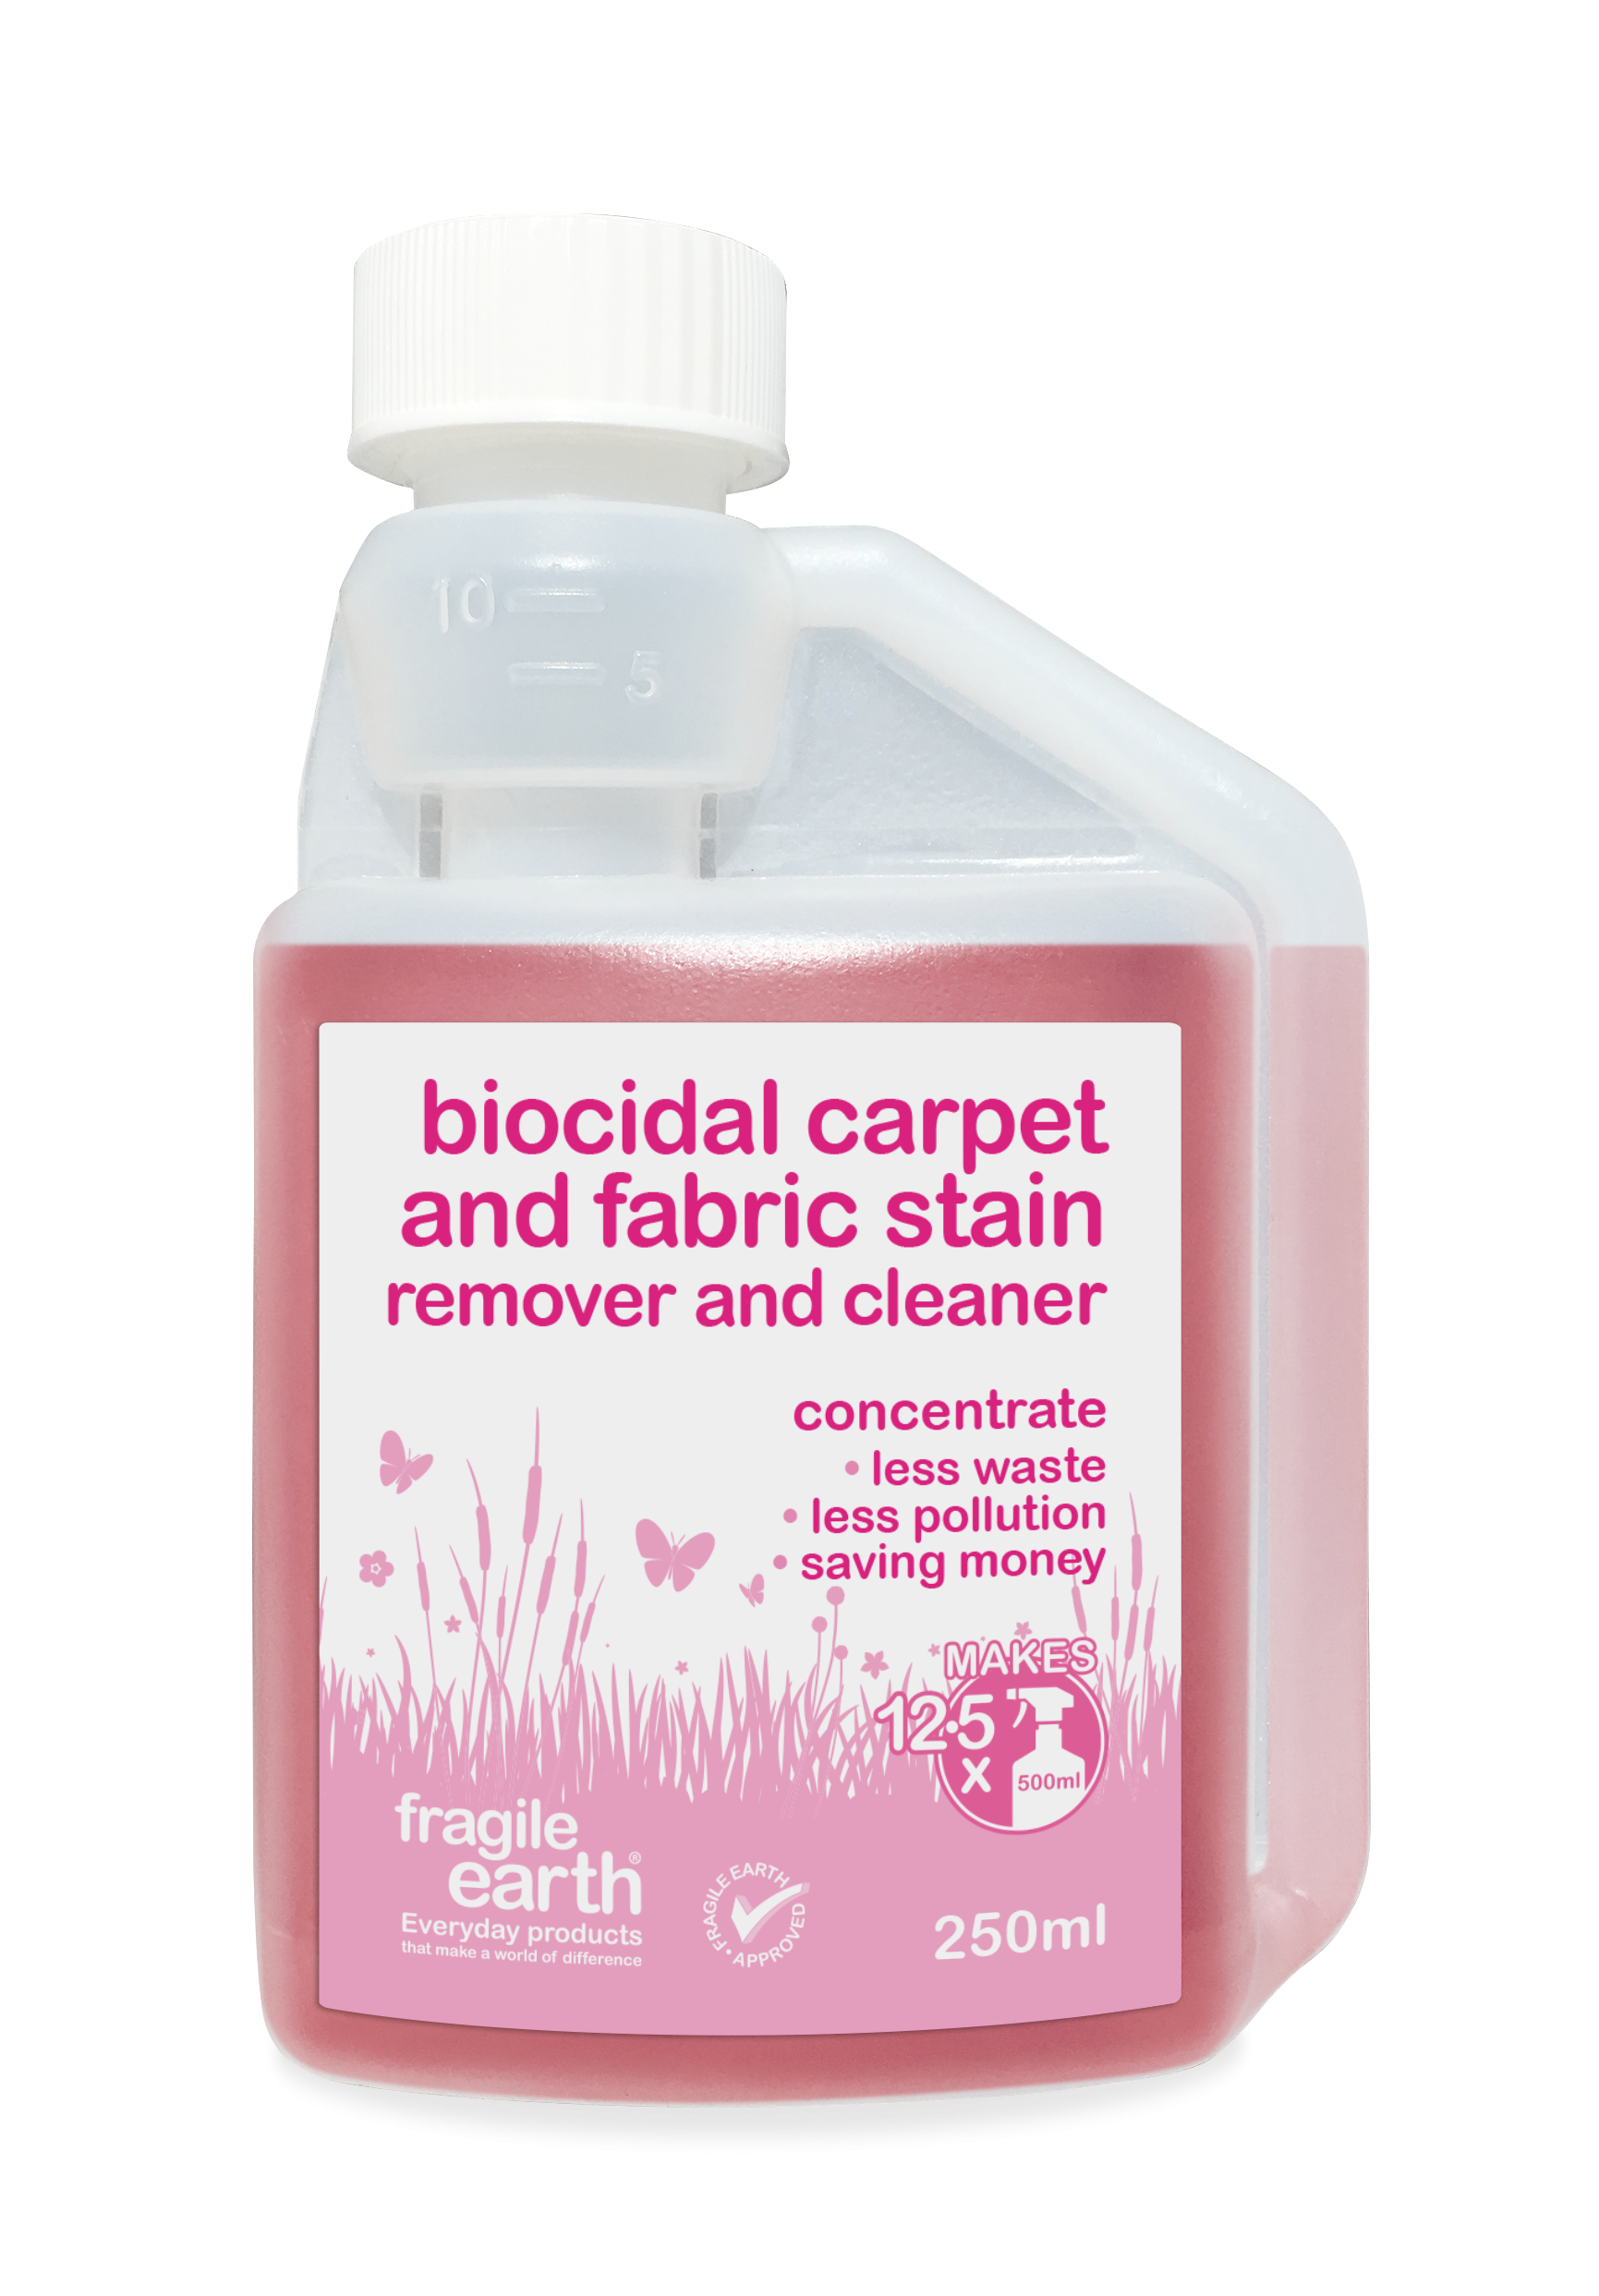 Fragile Earth Biocidal Carpet And Fabric Stain Remover And Cleaner